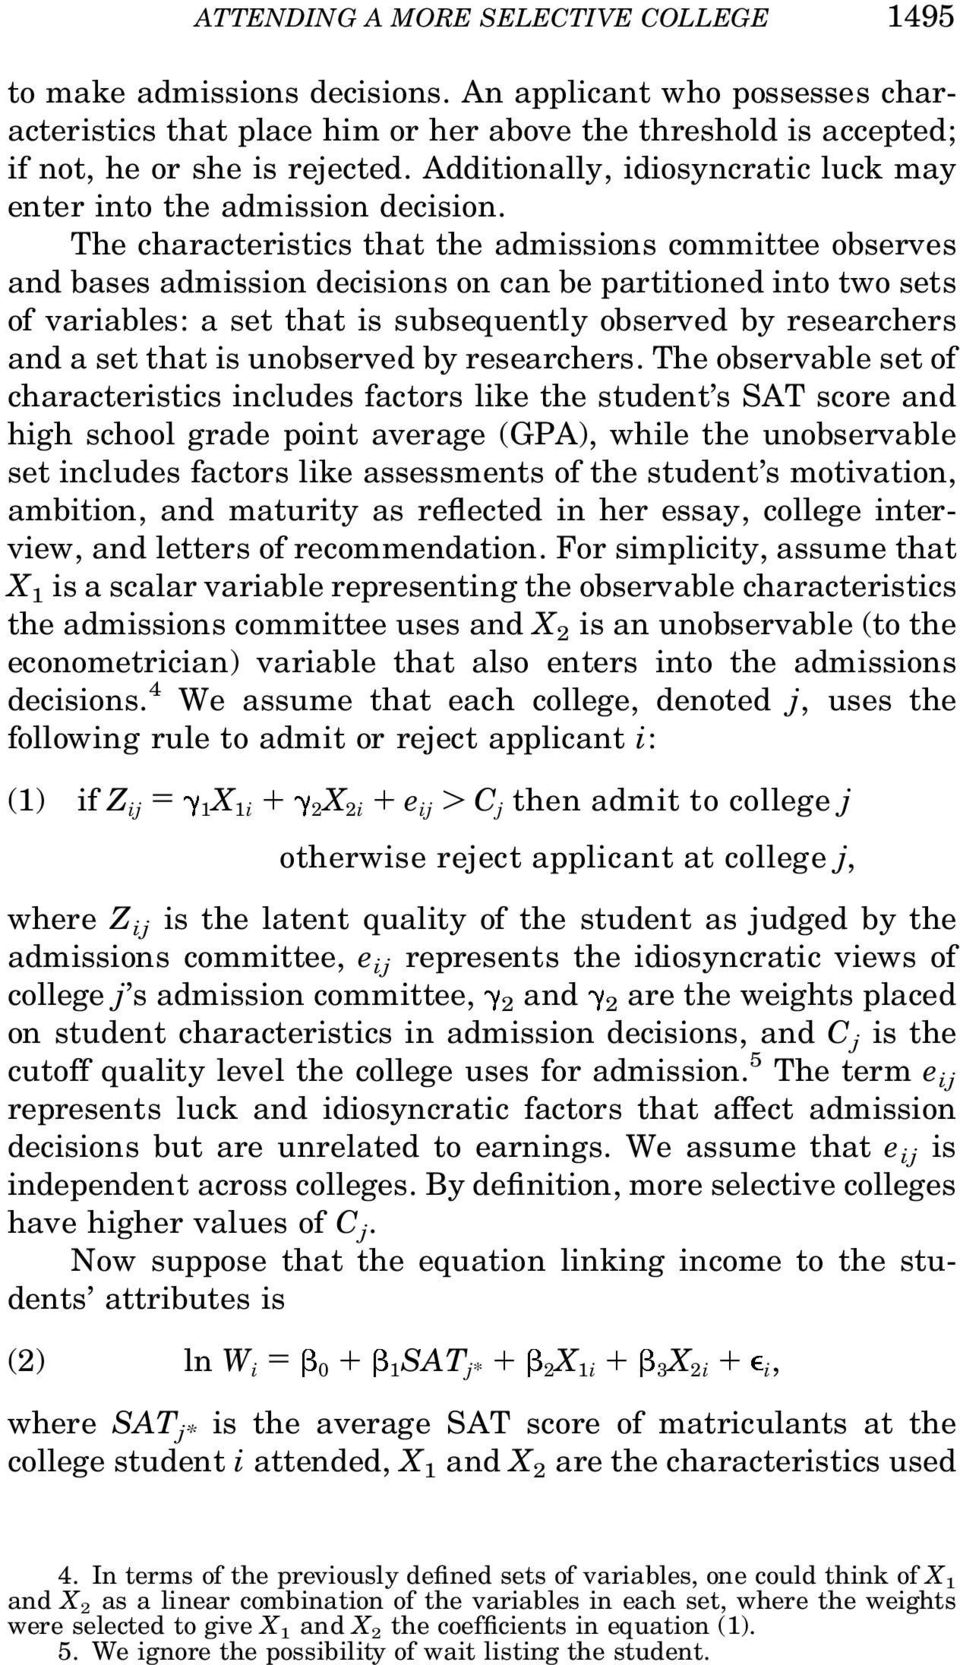 The characteristics that the admissions committee observes and bases admission decisions on can be partitioned into two sets of variables: a set that is subsequently observed by researchers and a set